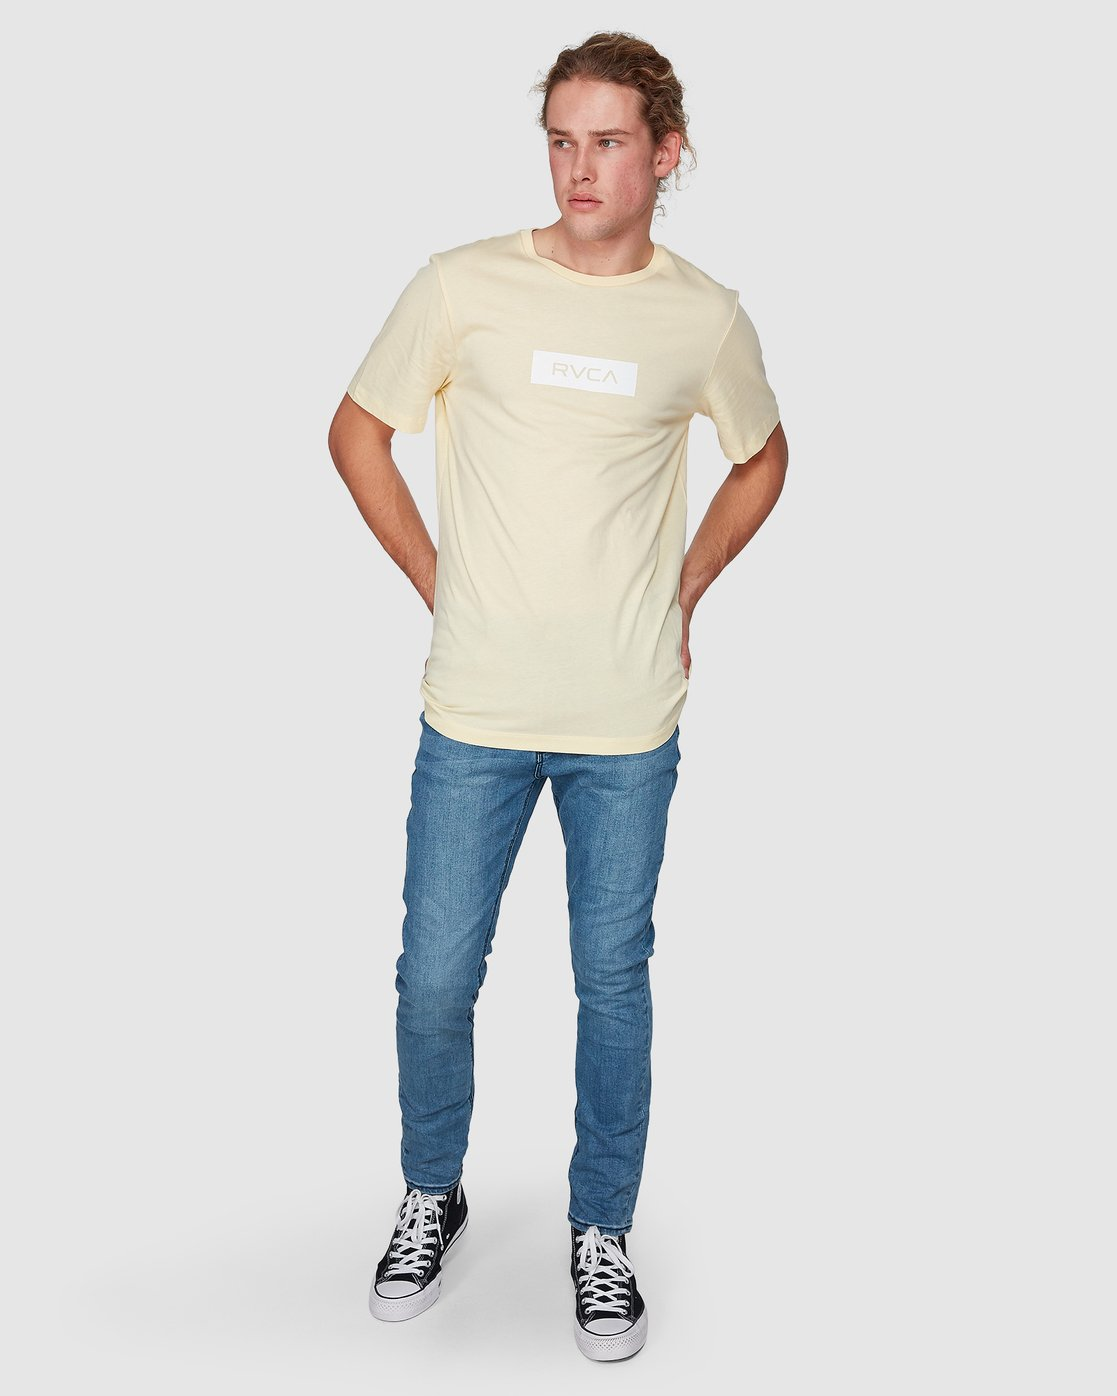 4 RVCA Box Short Sleeve T-Shirt  R182073 RVCA